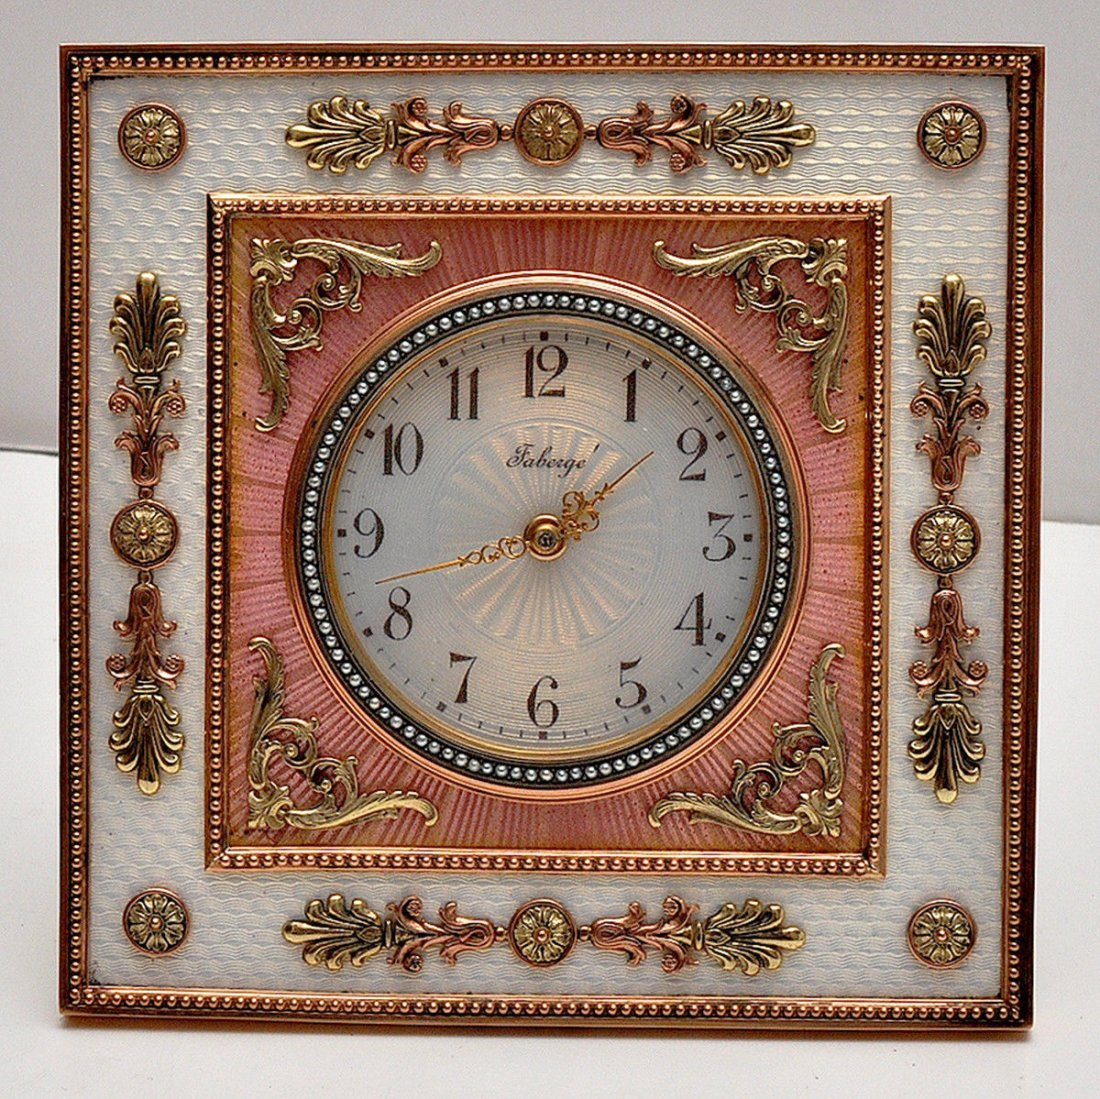 MAGNIFICENT RUSSIAN COLD ENAMEL DIAMOND CLOCK